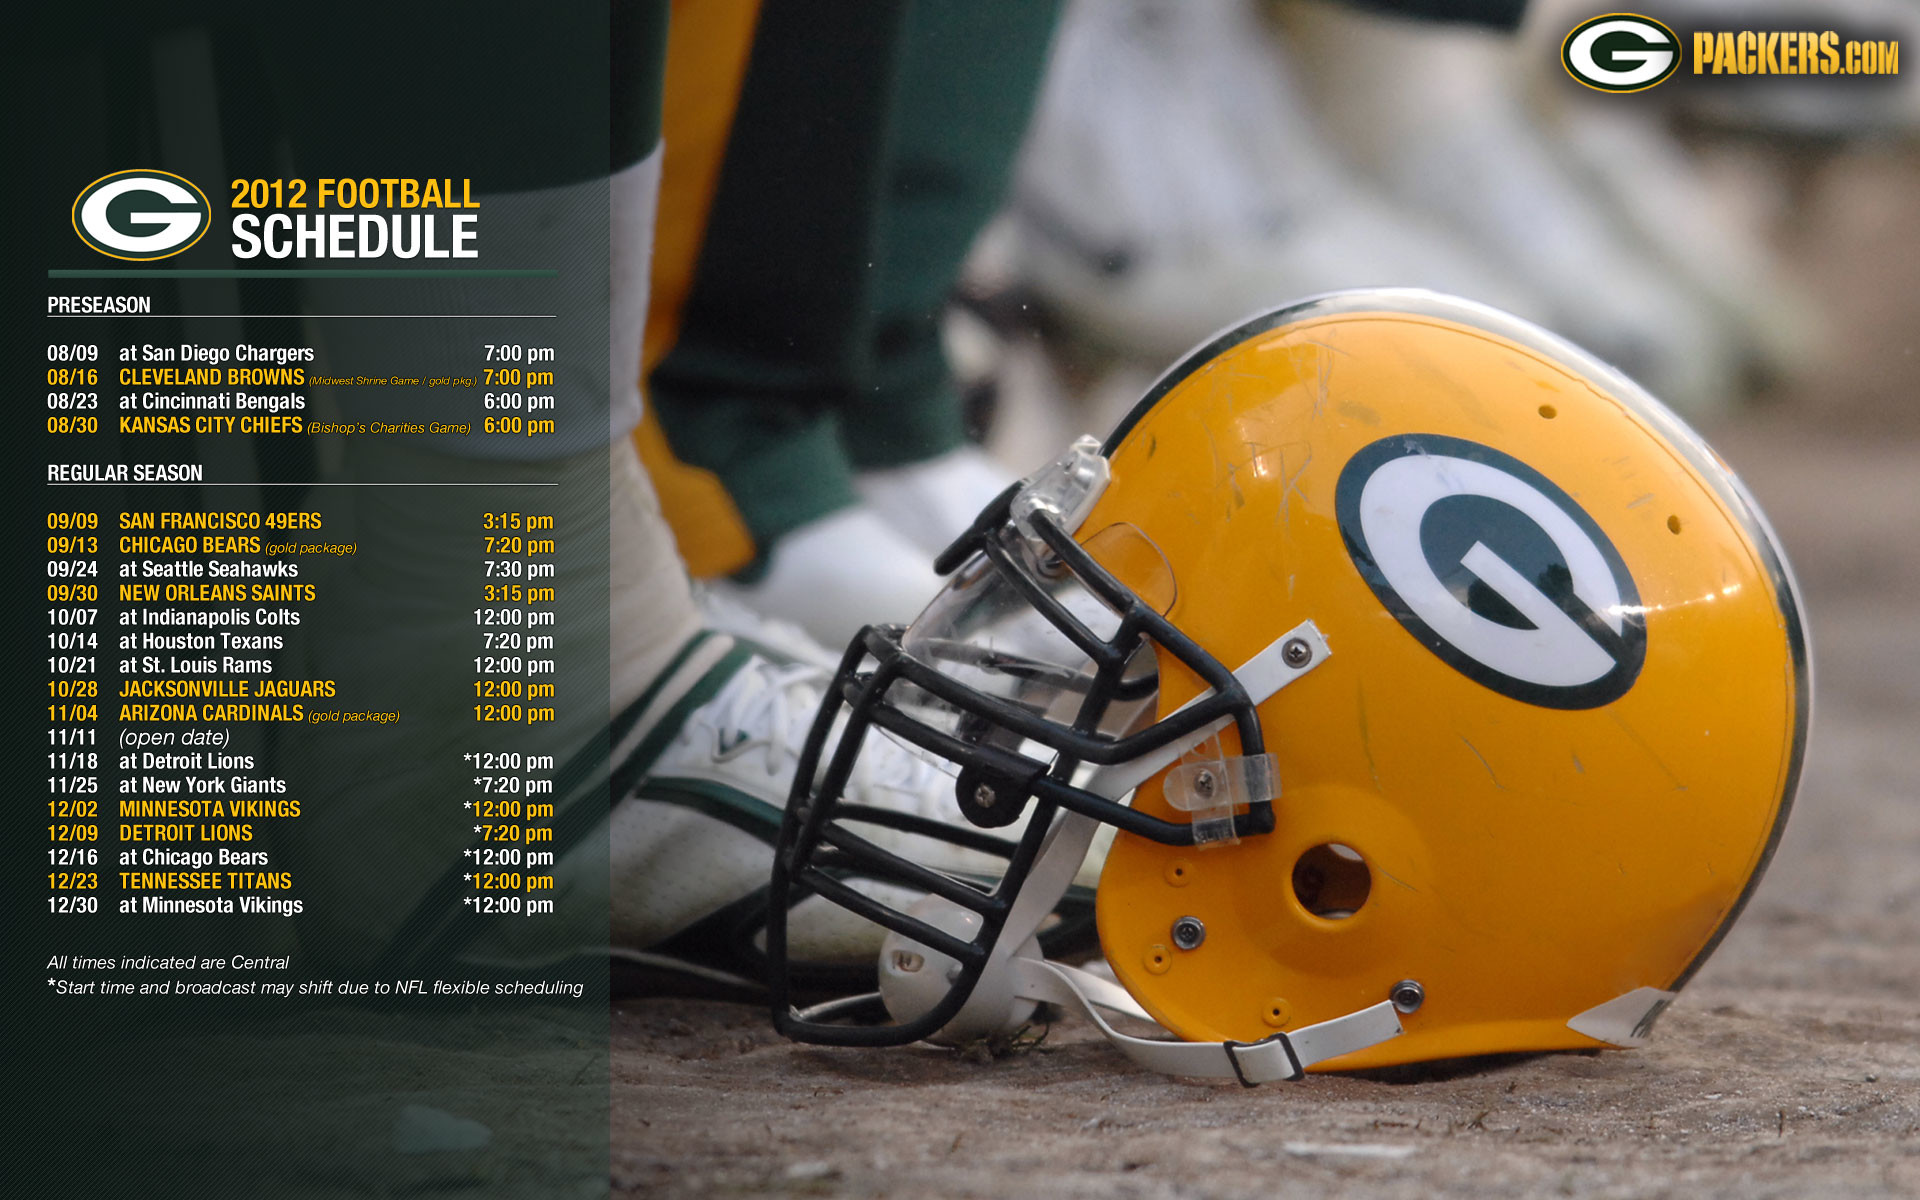 Green Bay Packers Iphone X Wallpaper Green Bay Packers Football Wallpapers 72 Images